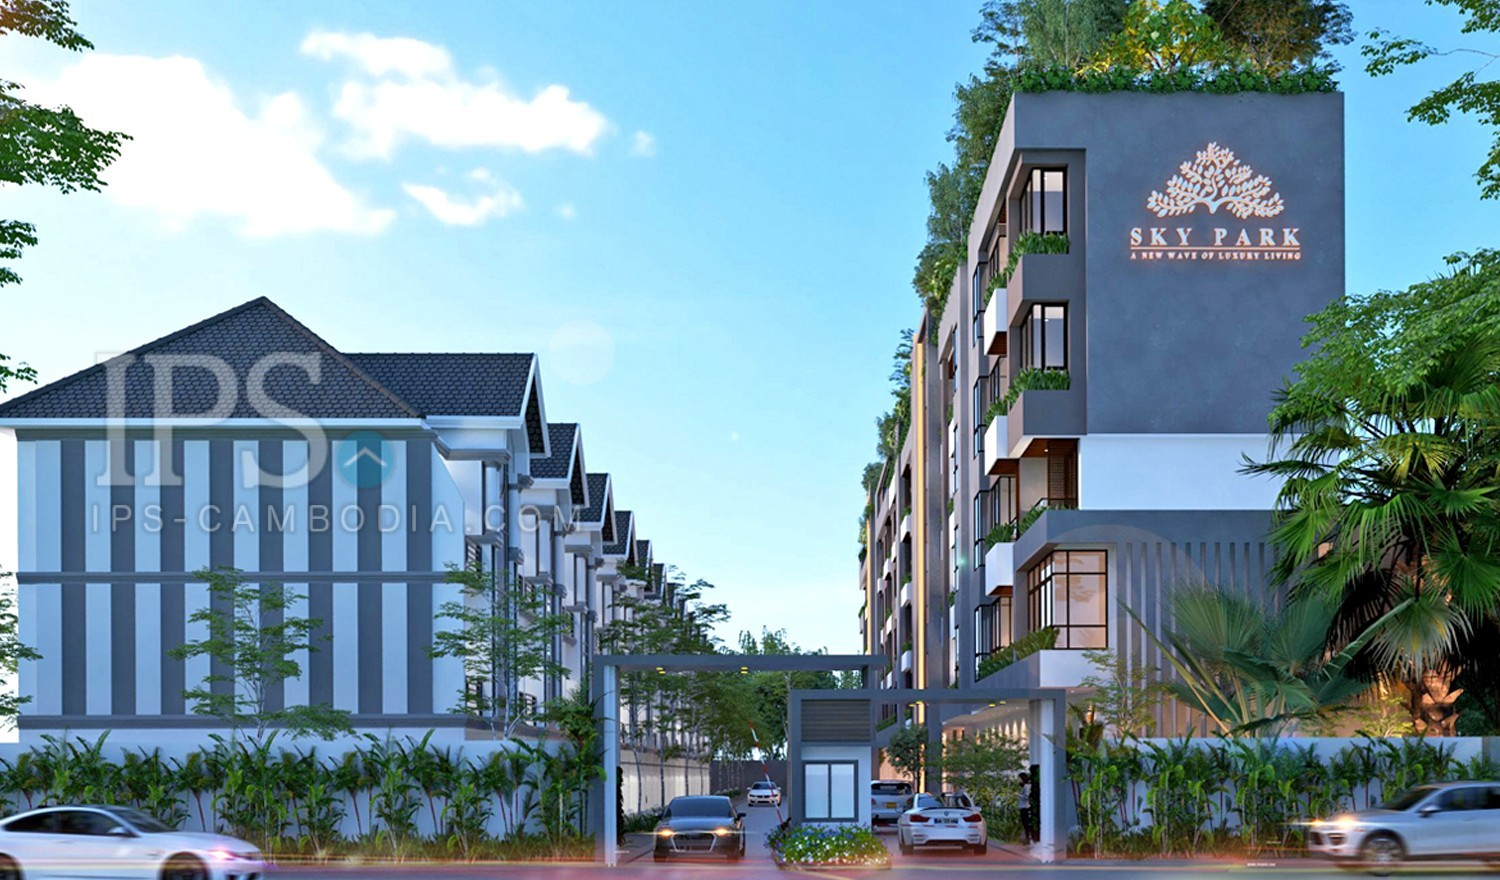 3 Bedroom Condo For Sale - Svay Dangkum, Siem Reap